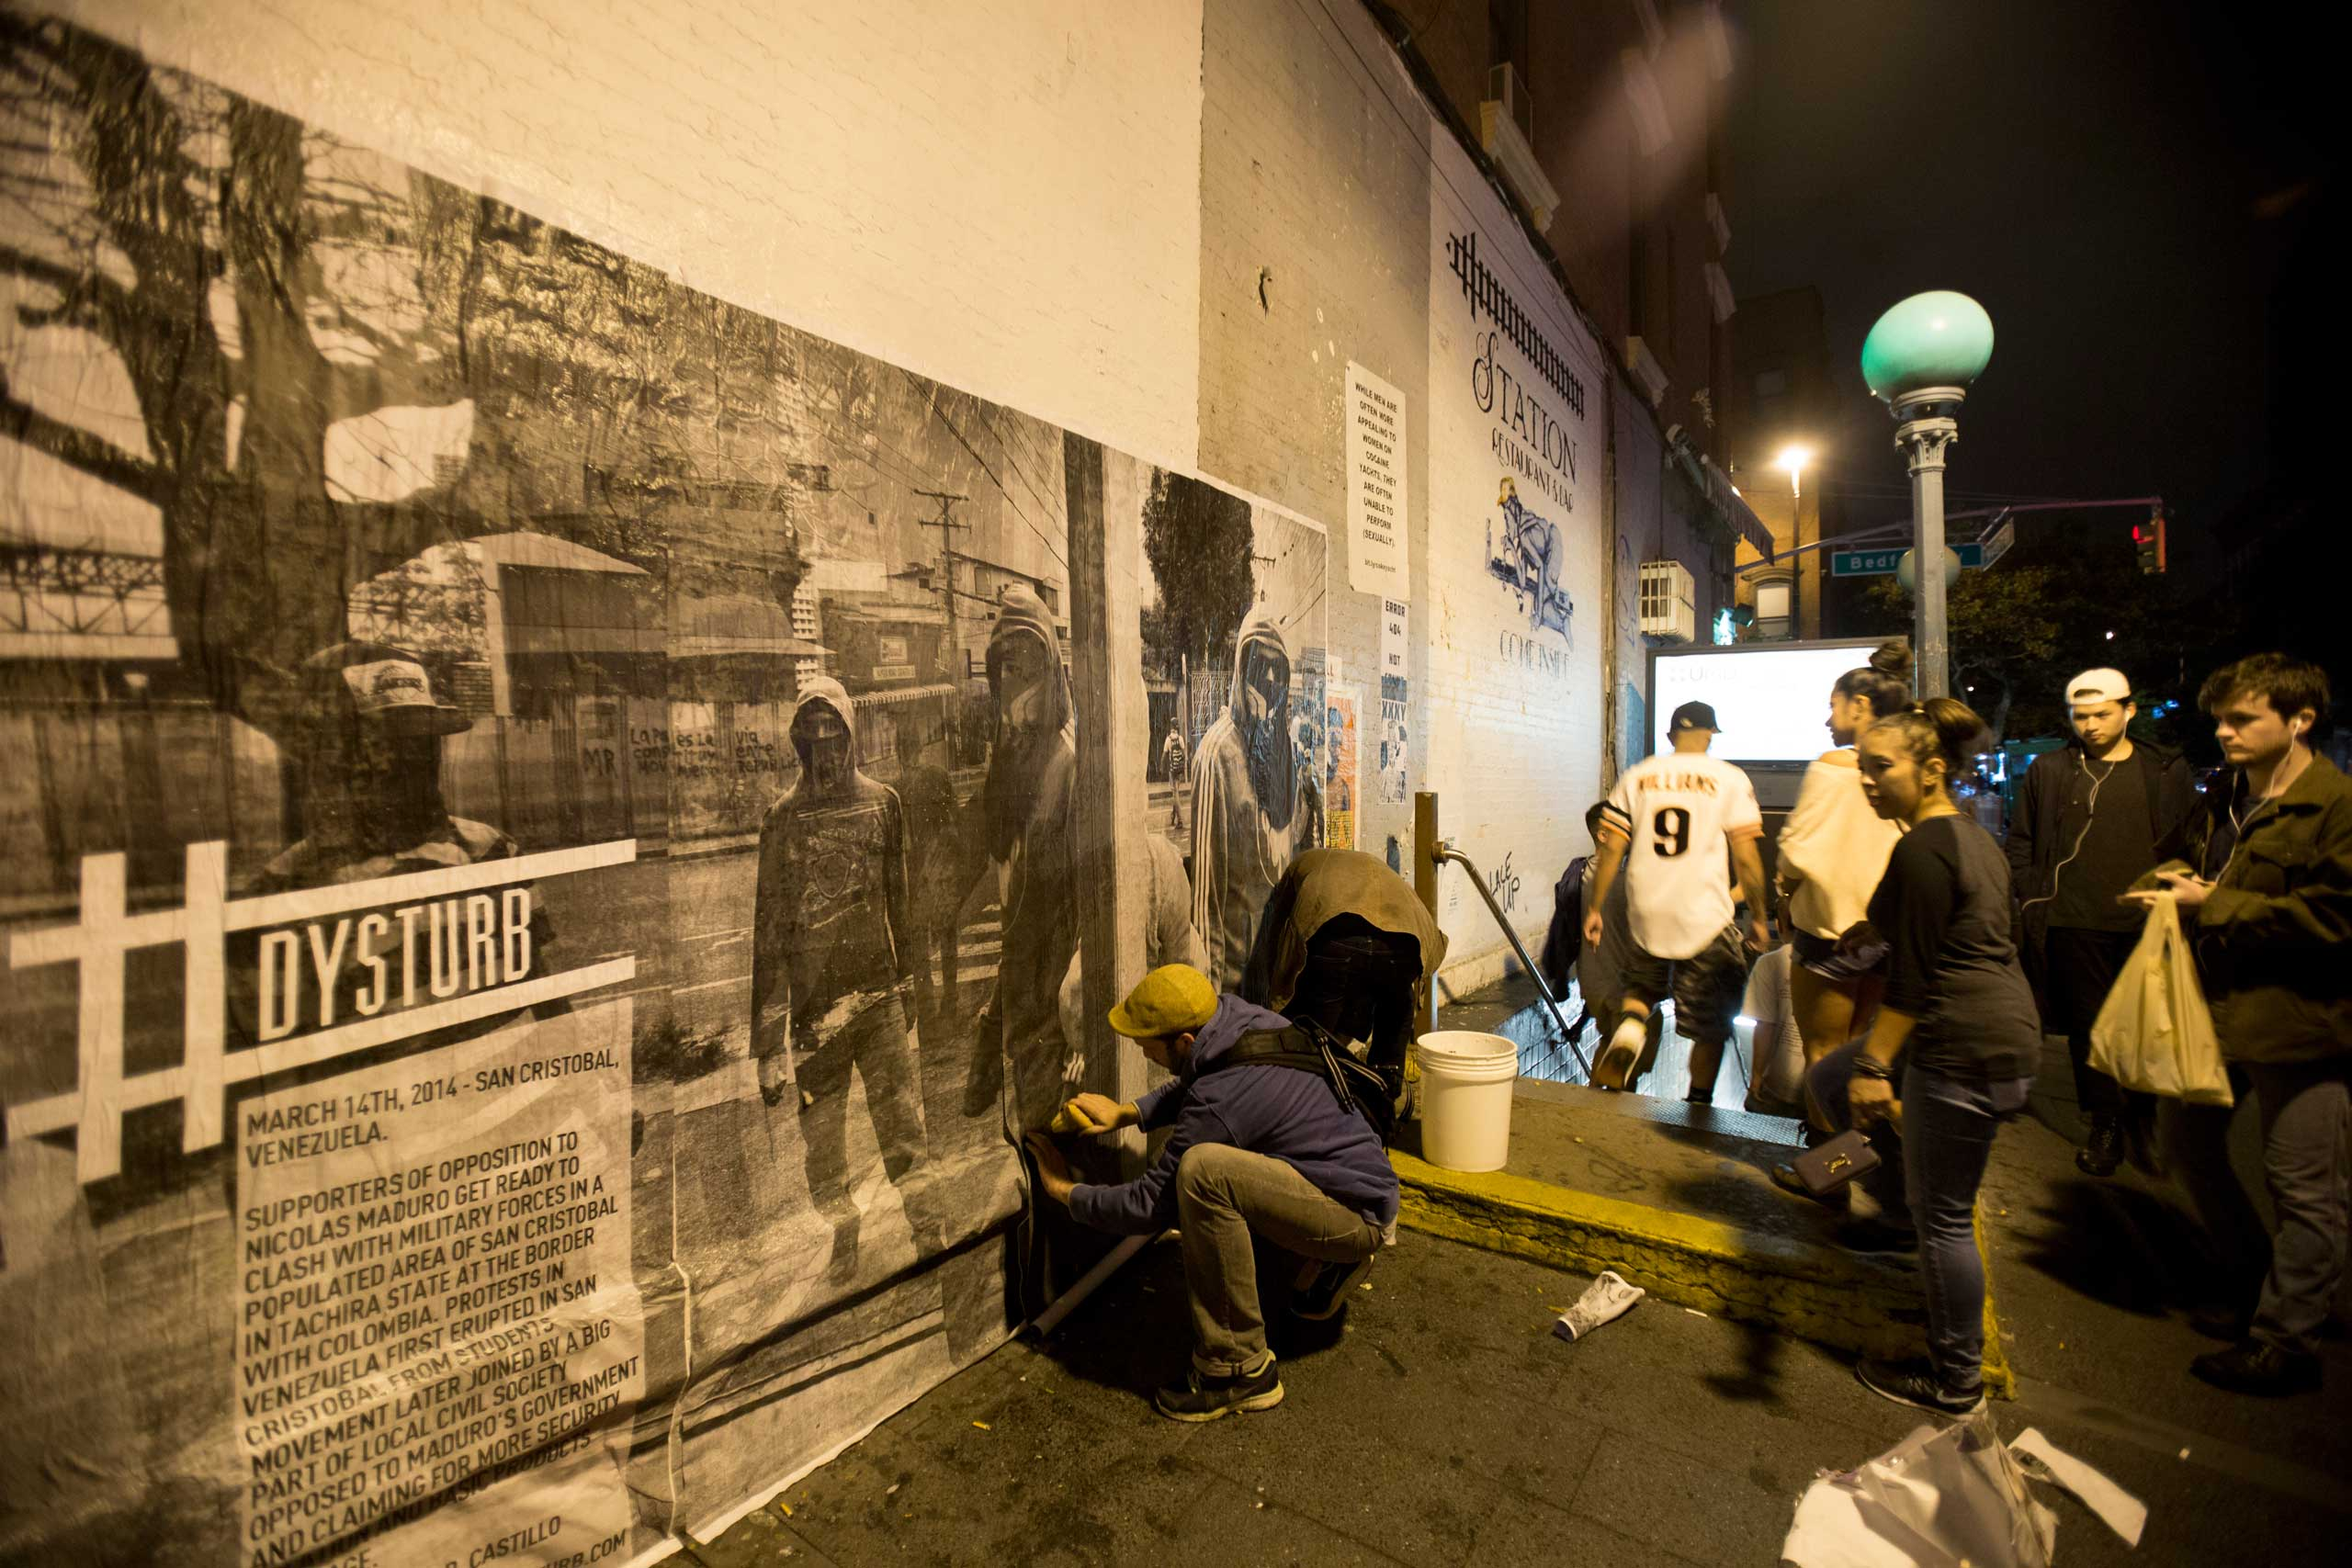 Onlookers, as the Dysturb team paste a photograph in Brooklyn, New York (on the corner of N 7th Street and Bedford Avenue). October 16th 2014.